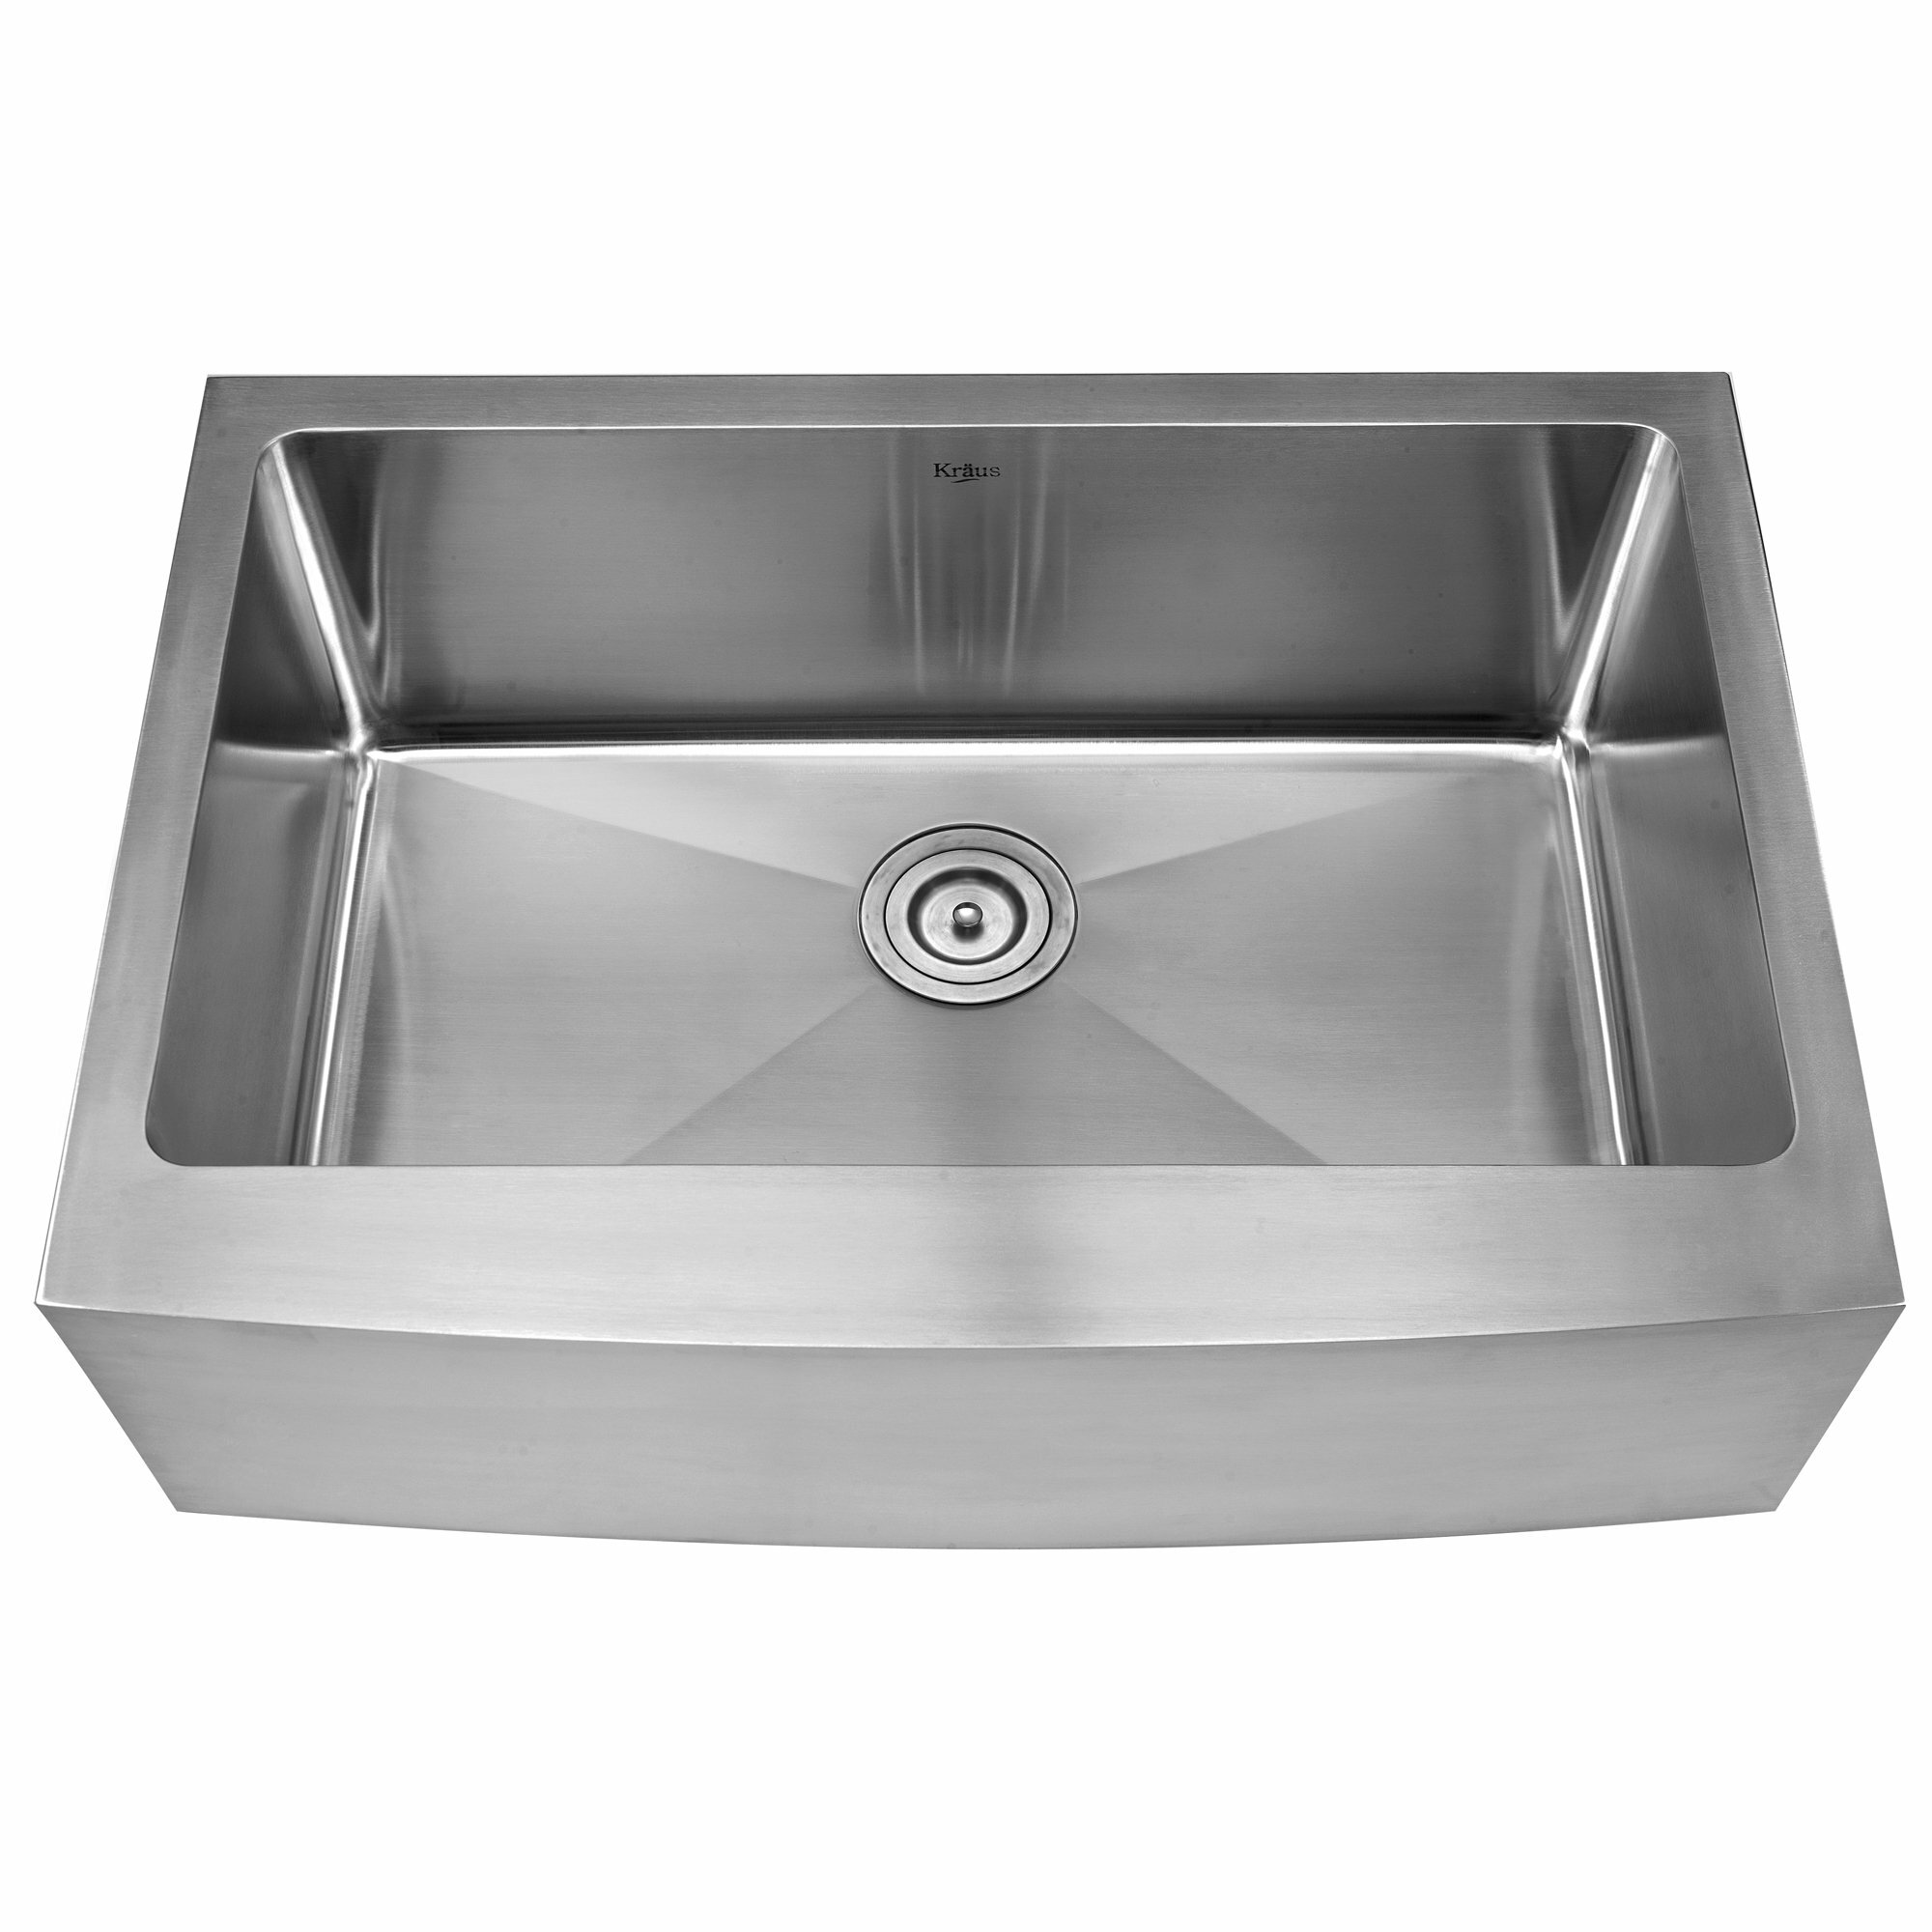 20 Farmhouse Sink : Kraus 29